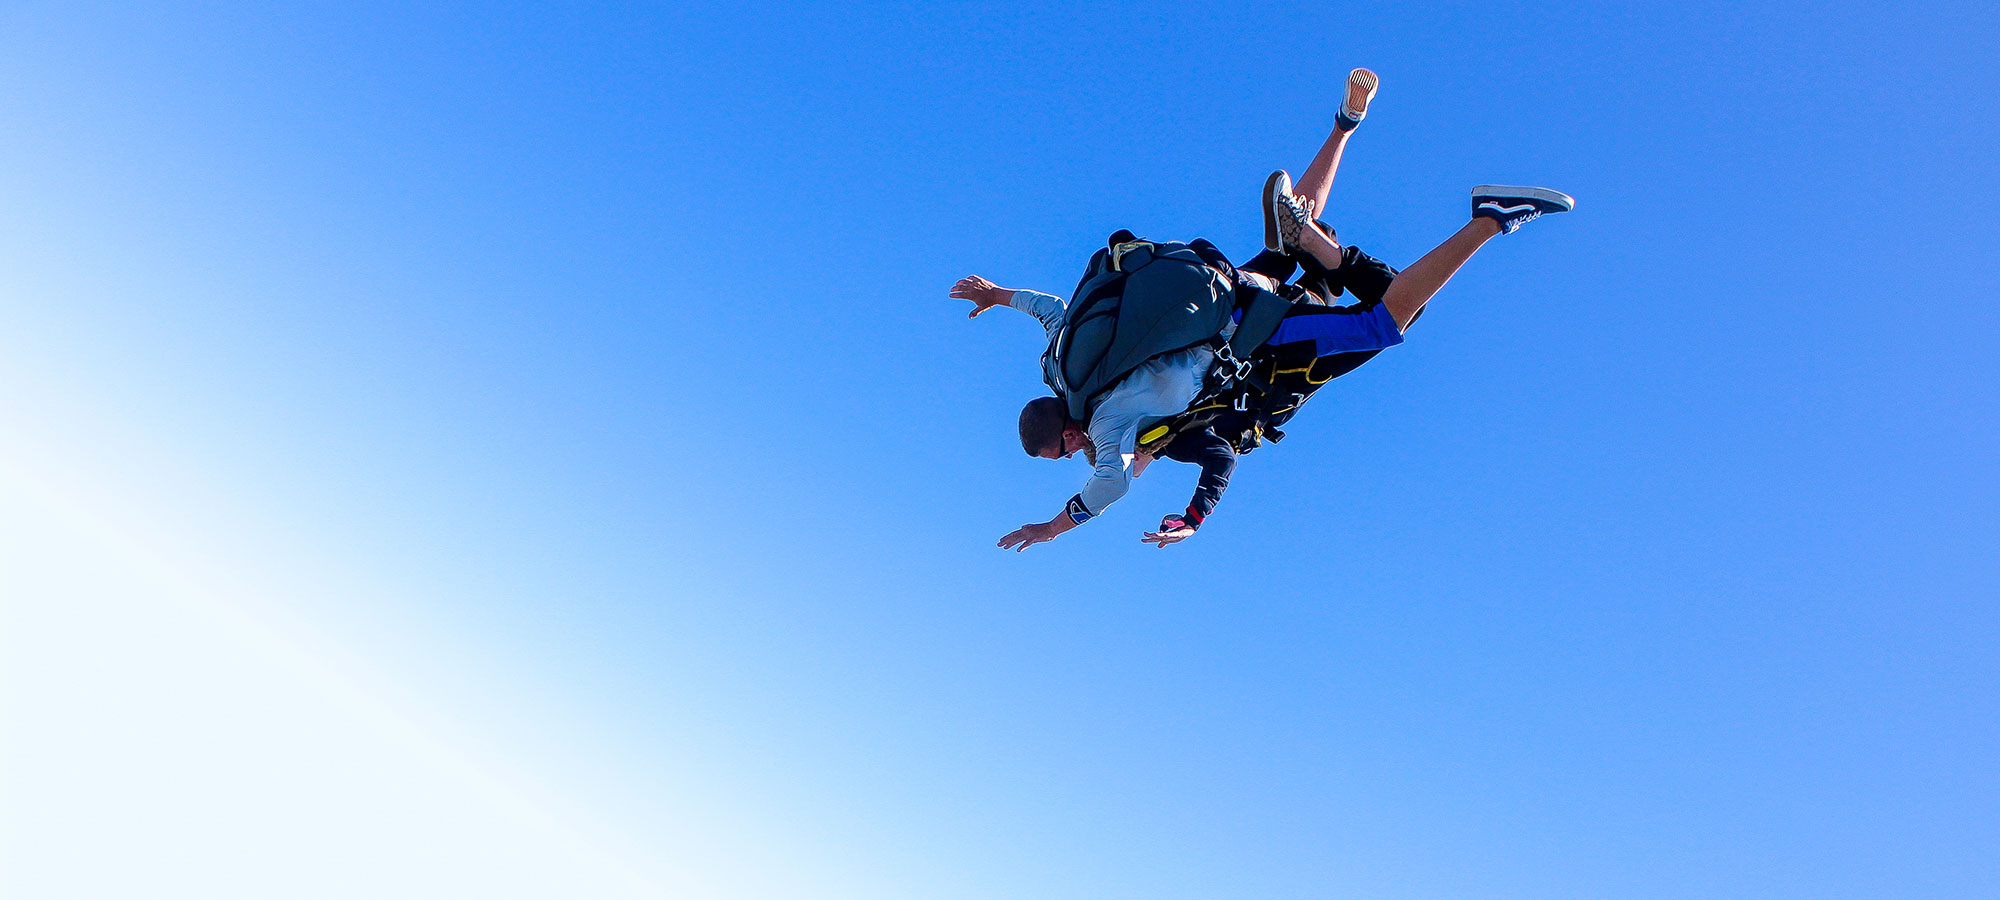 Tandem instructor and student in free fall with bright blue sky in the background.